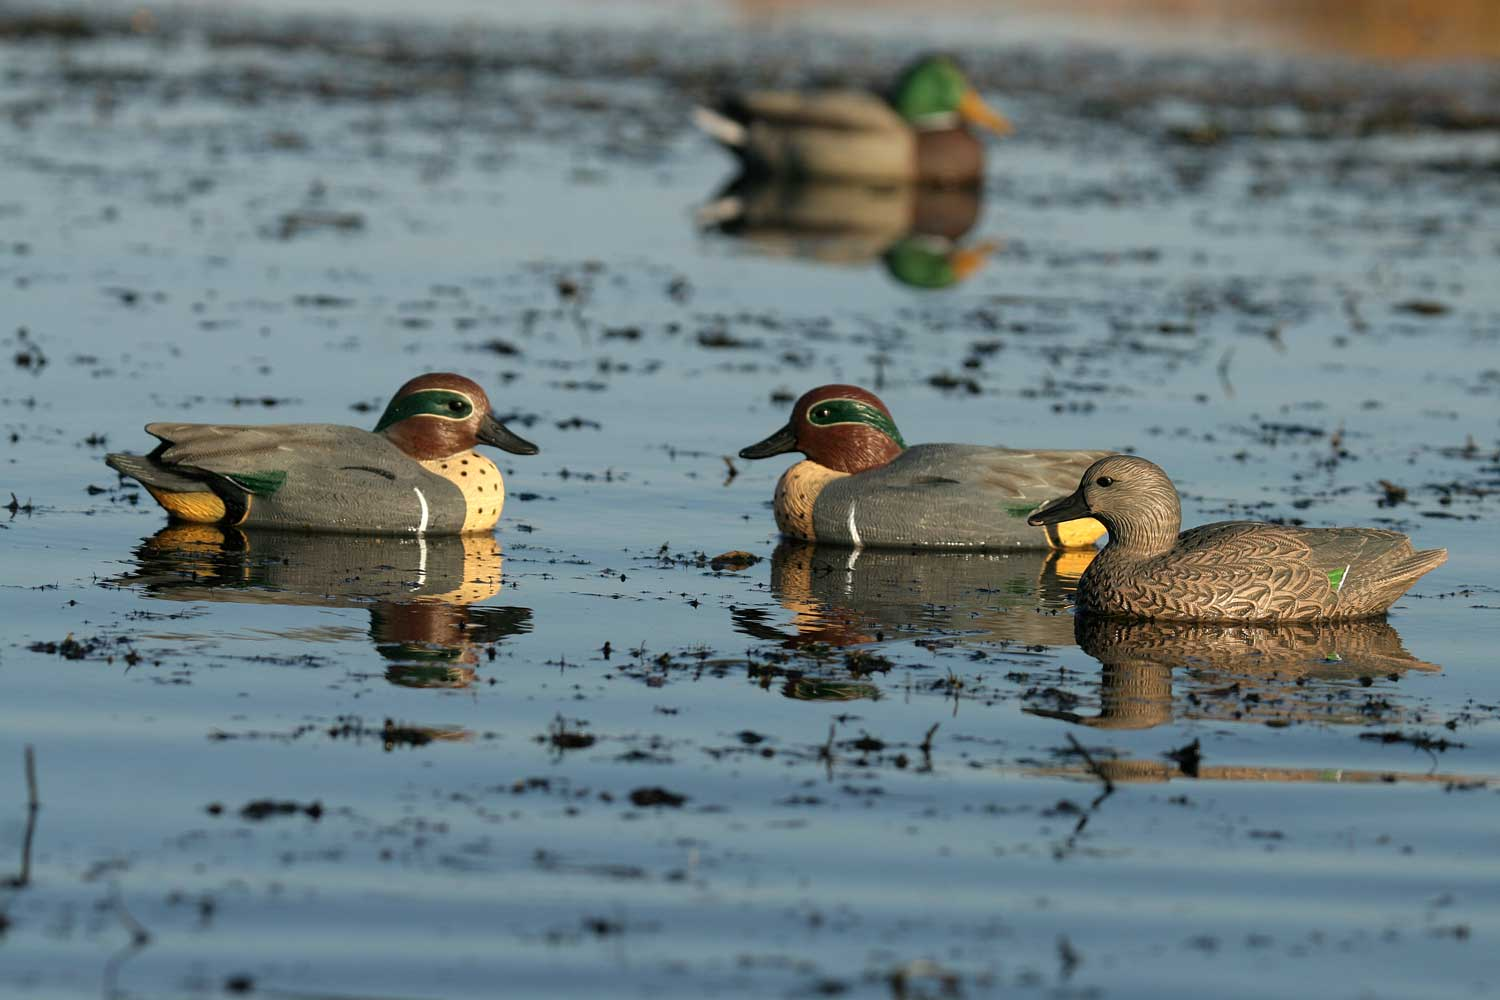 Avery GHG Life-Sized Floating Green-Winged Teal Decoys, 6 Pack_7.jpg